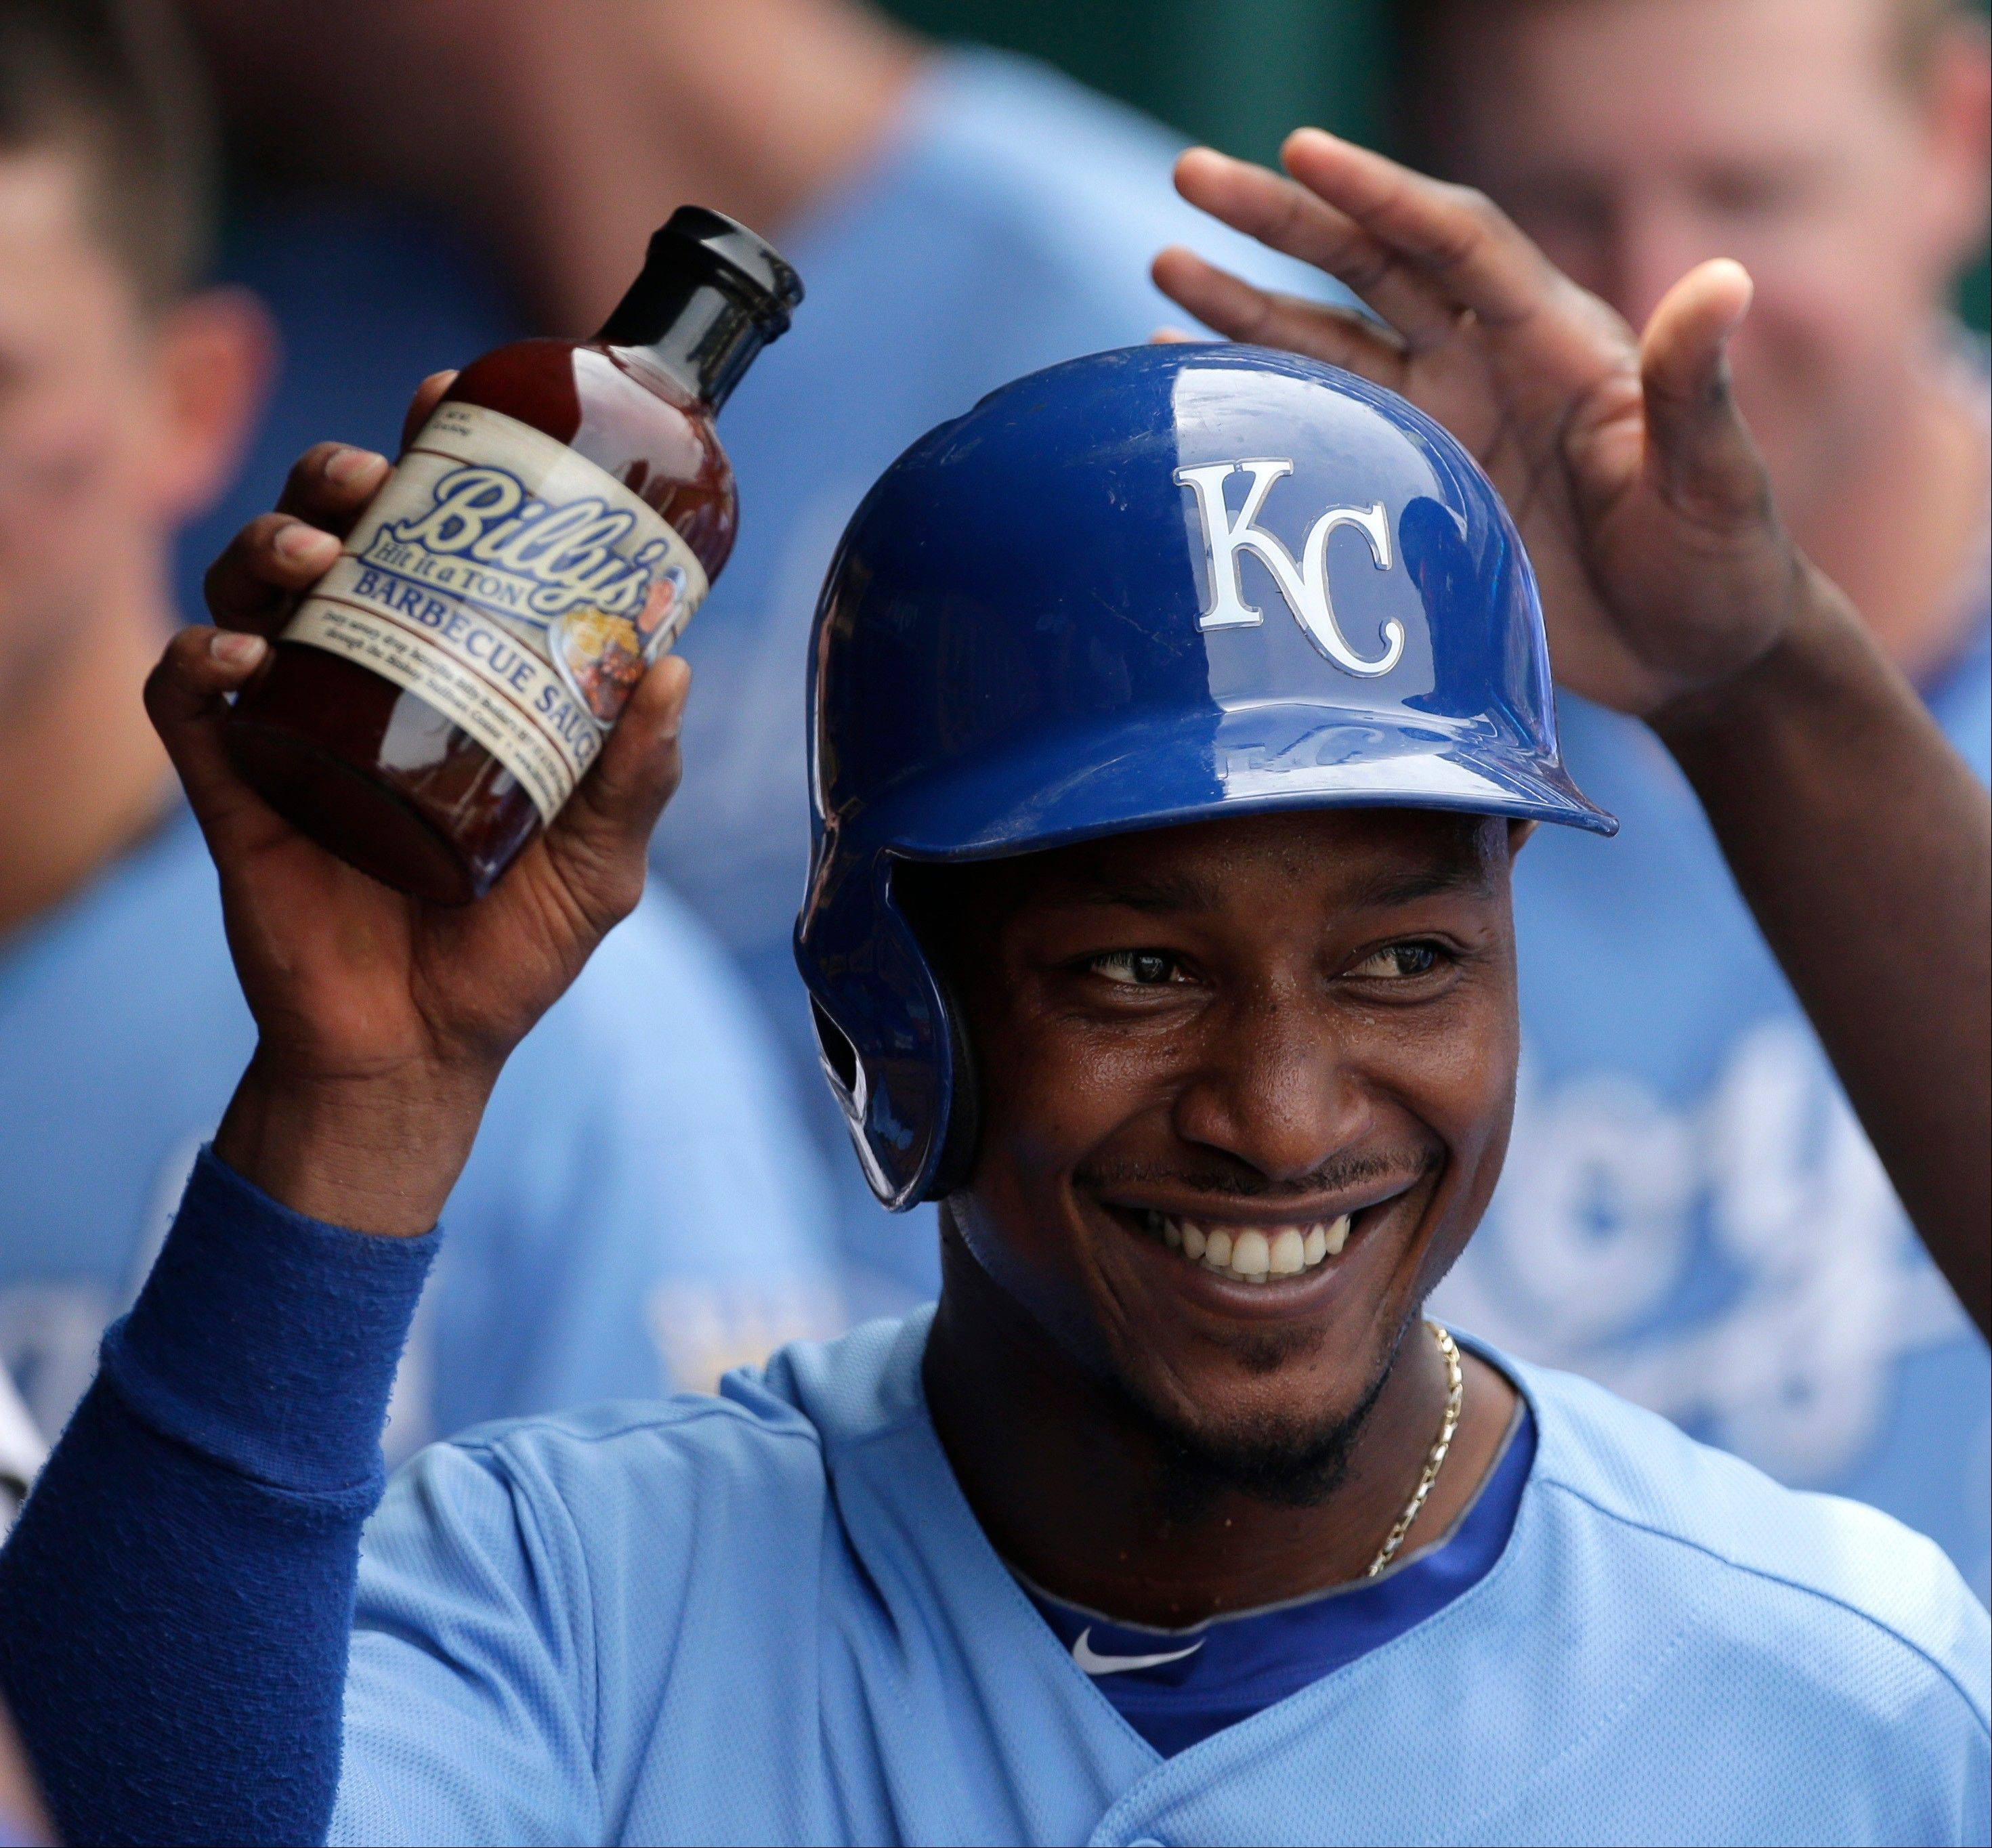 The Kansas City Royals' Jarrod Dyson celebrates in the dugout with a jar of Billy's barbeque sauce after scoring on a single by Alex Gordon during the third inning of a baseball game against the Chicago White Sox, Sunday, June 23, 2013, in Kansas City, Mo.